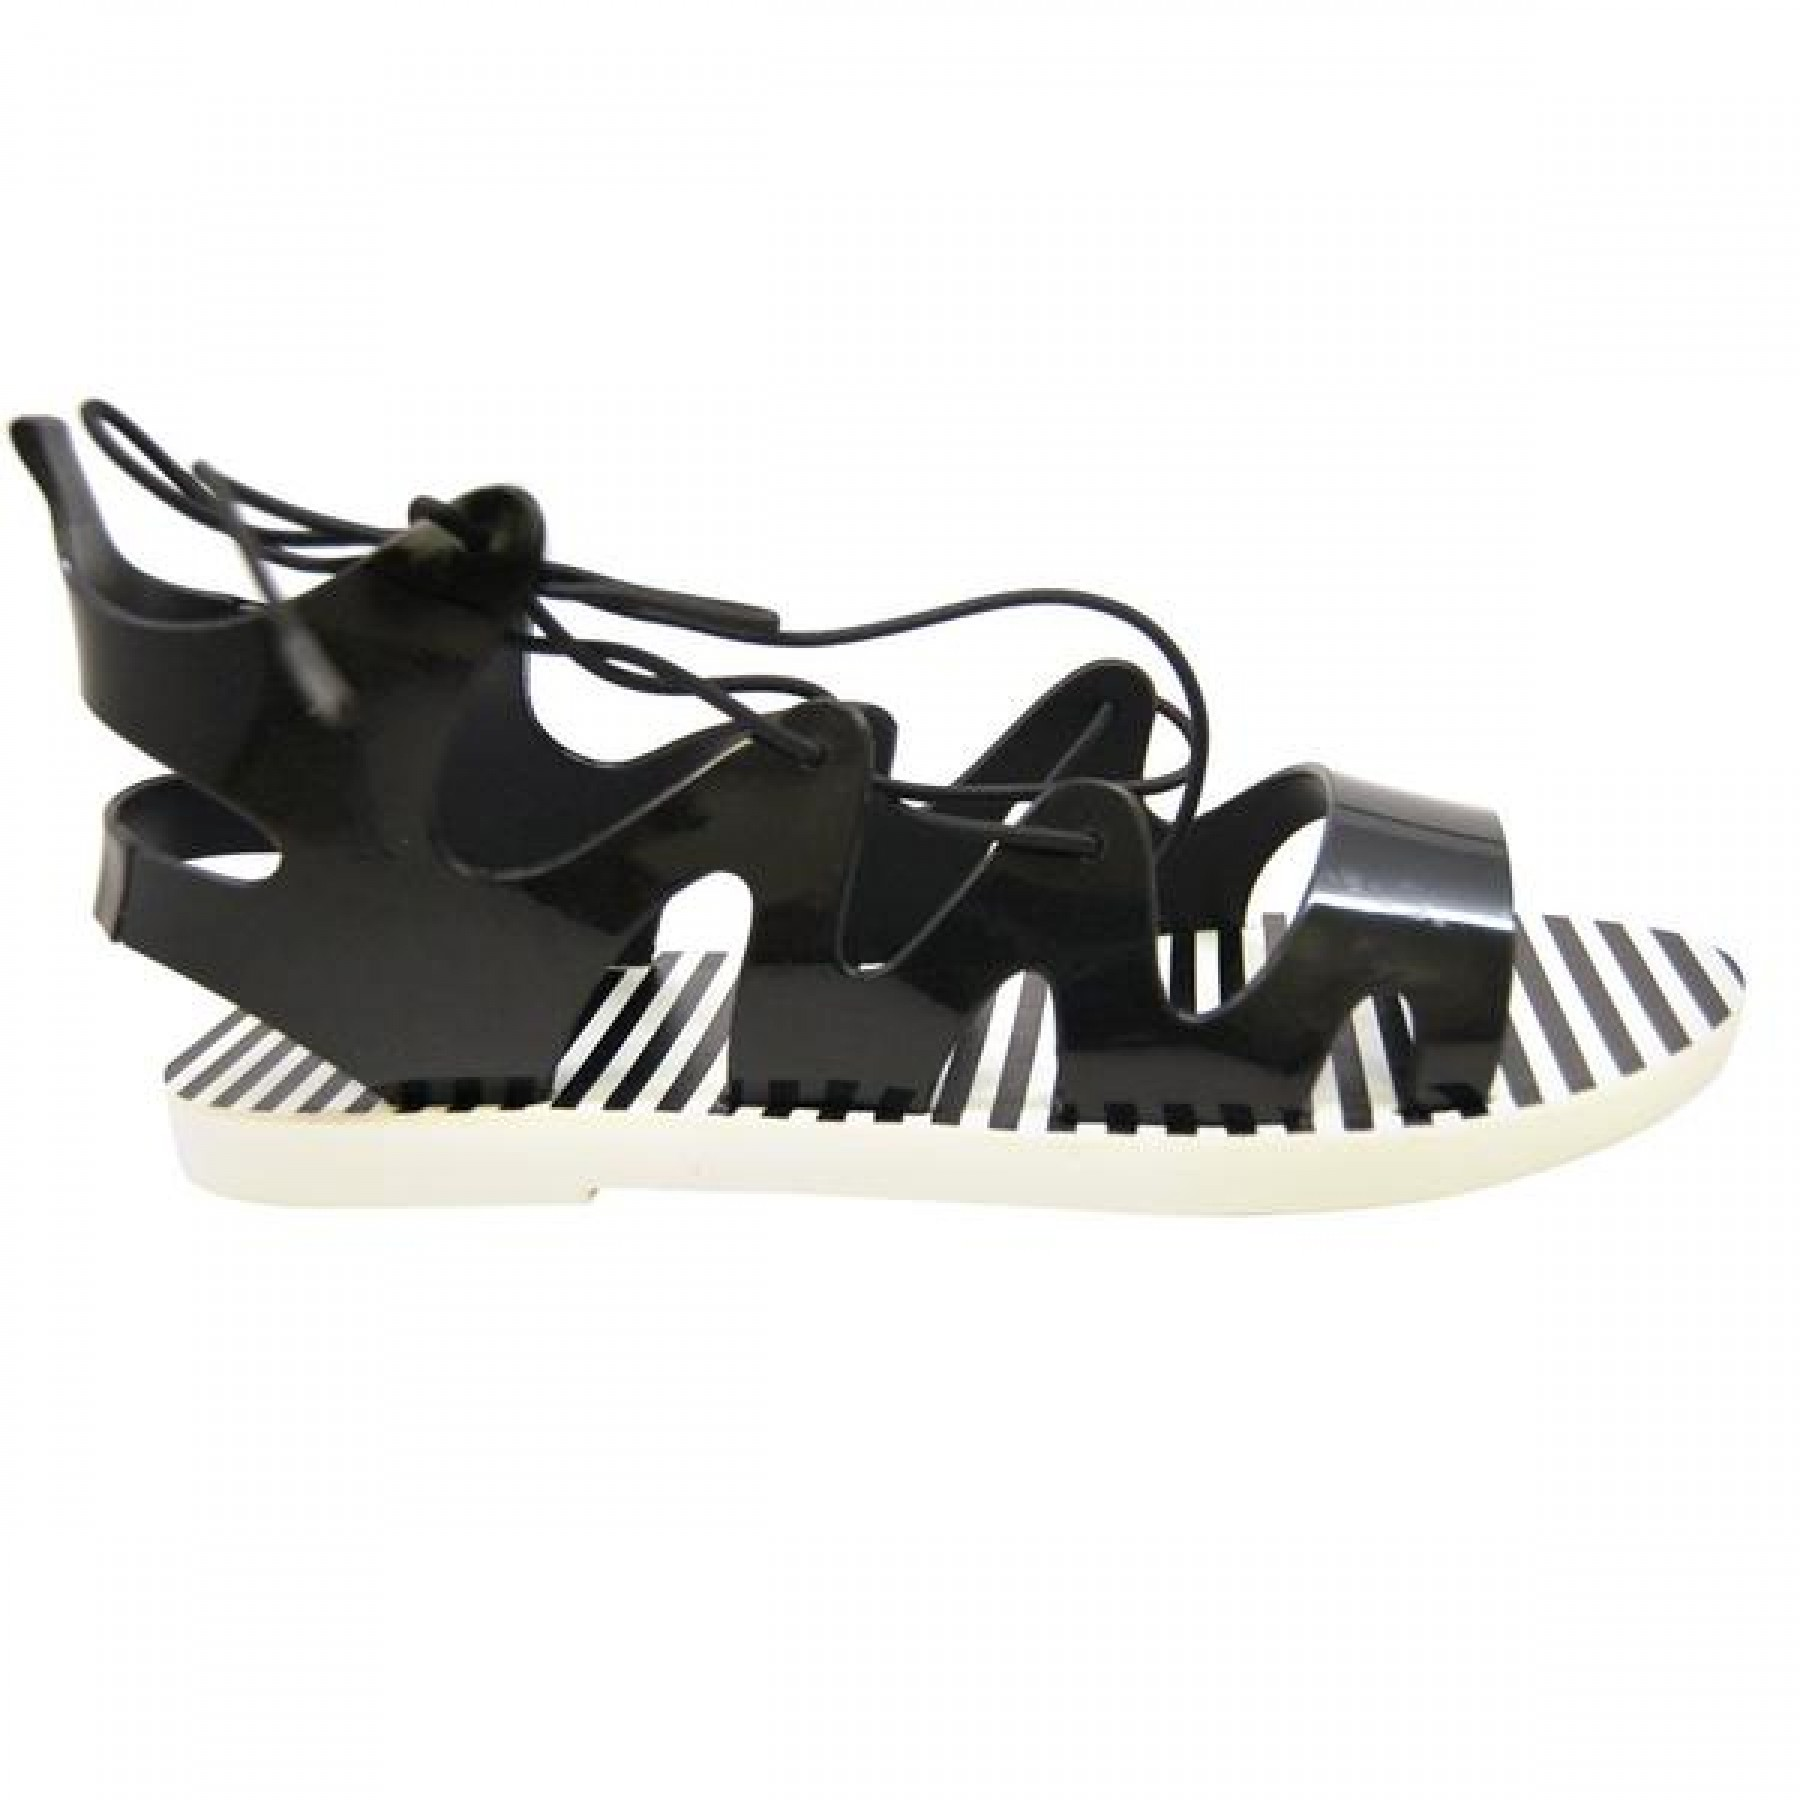 Women's Black Manmade Nihoa Jelly Sandal with Lace-up Gladiator Vamp